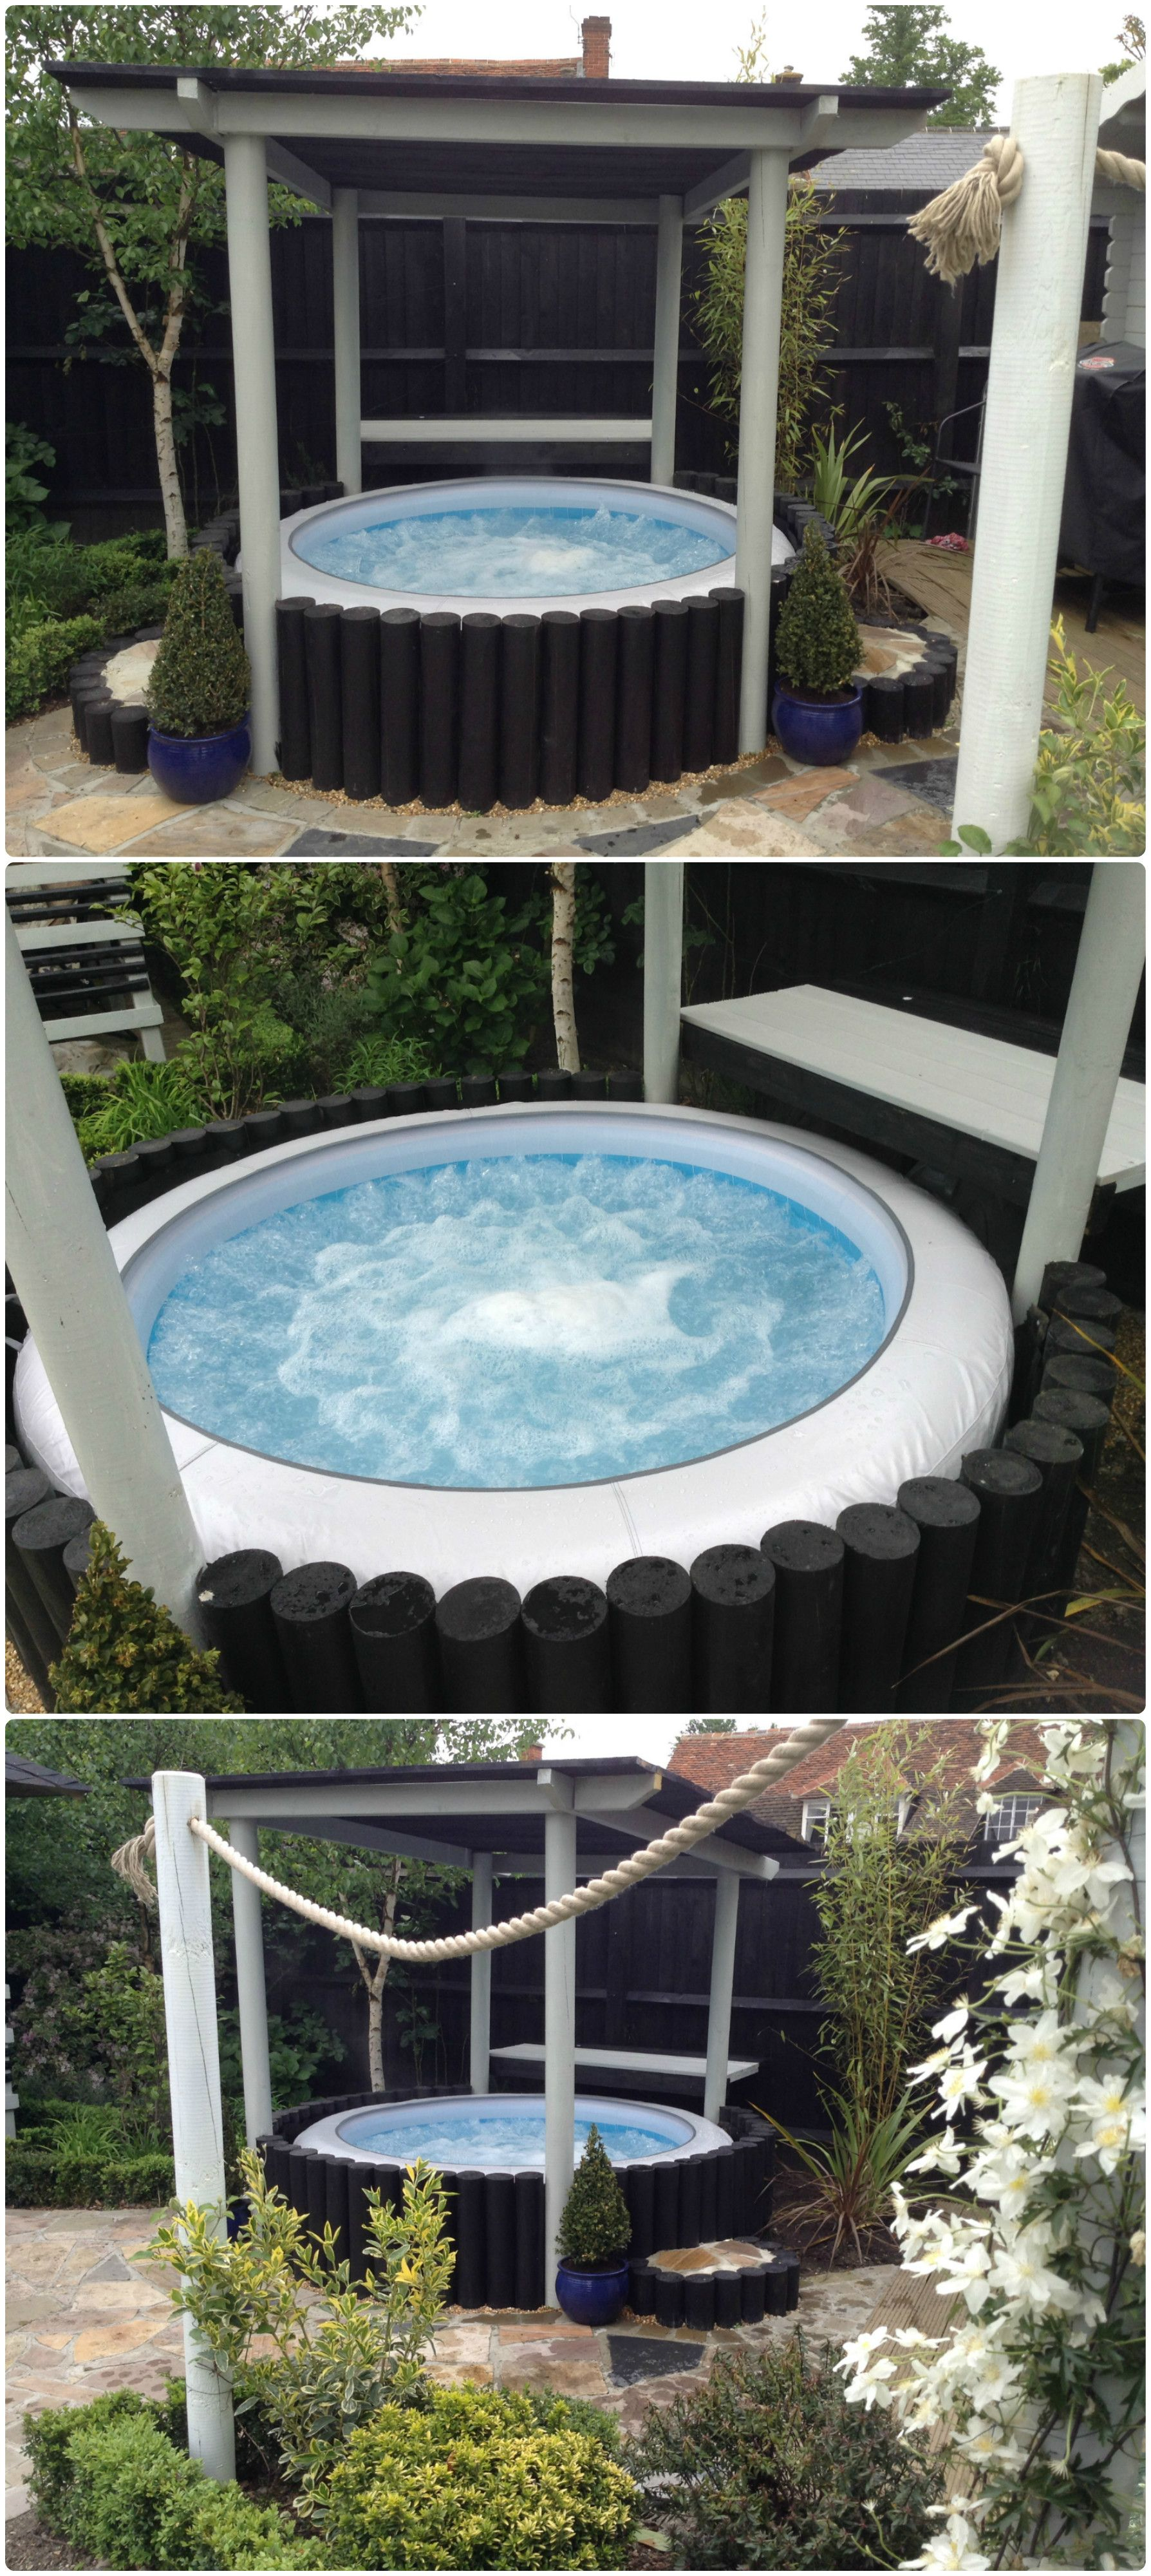 Inflatable Hot Tub Surround For Lay Z Spa Hot Tub Garden Hot Tub Backyard Hot Tub Surround